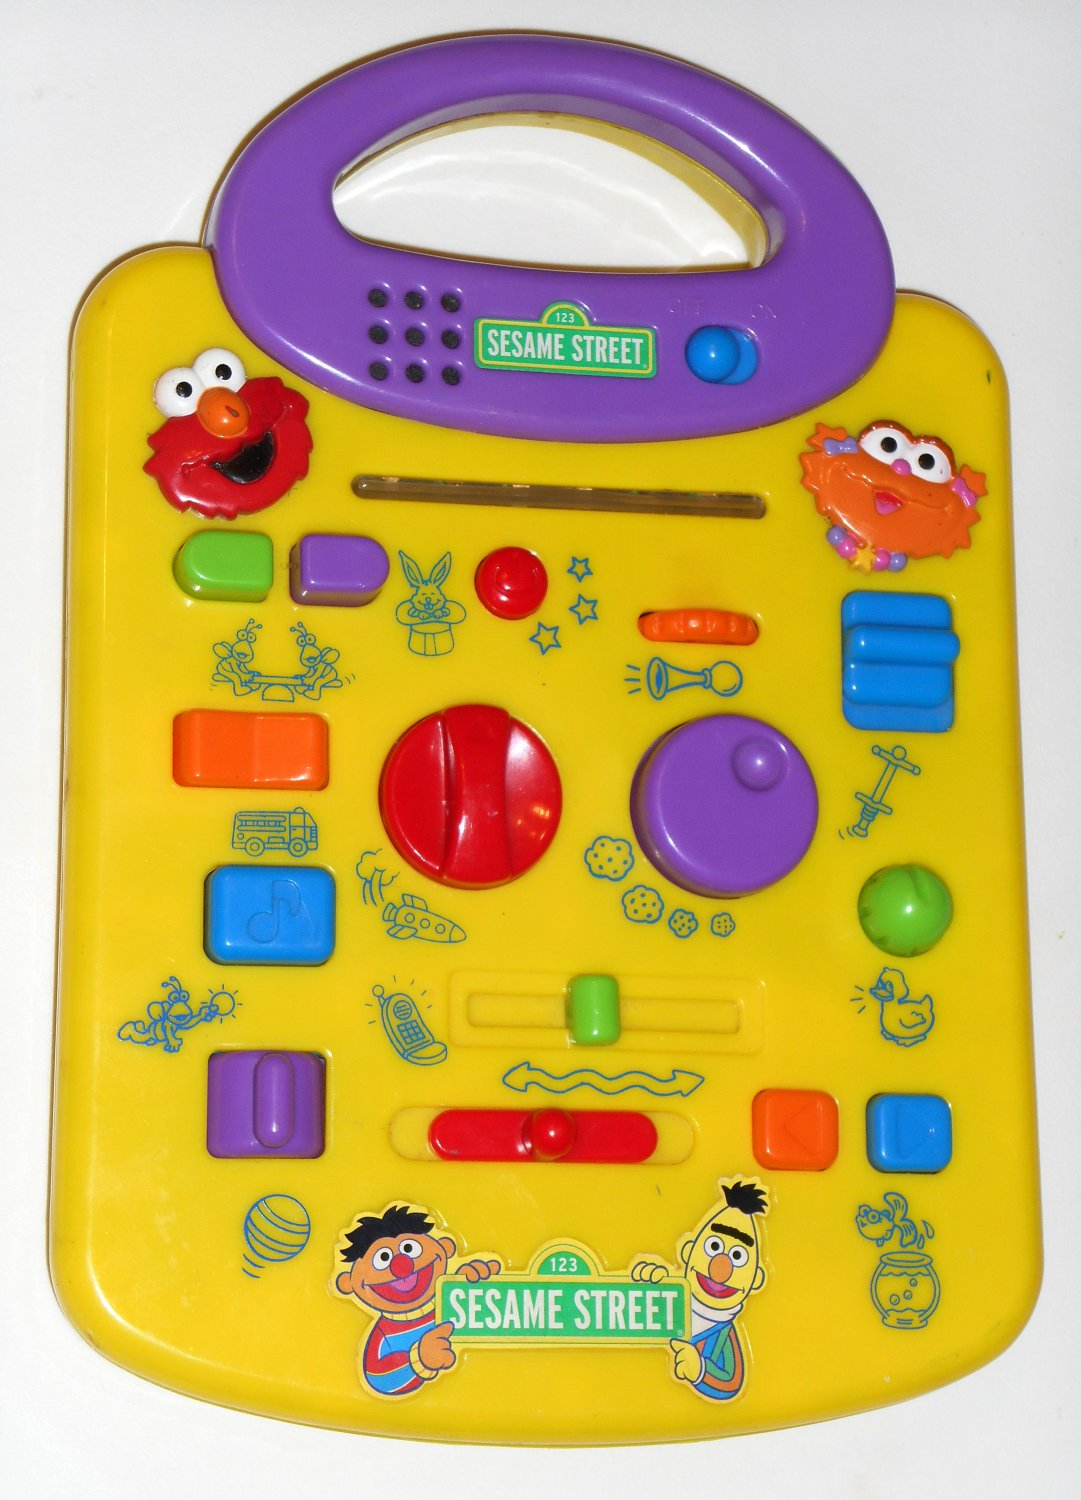 SOLD OUT Sesame Street Lot Giggle Silly Sound Station Surprise Elmo Zoe Cookie Monster B9029